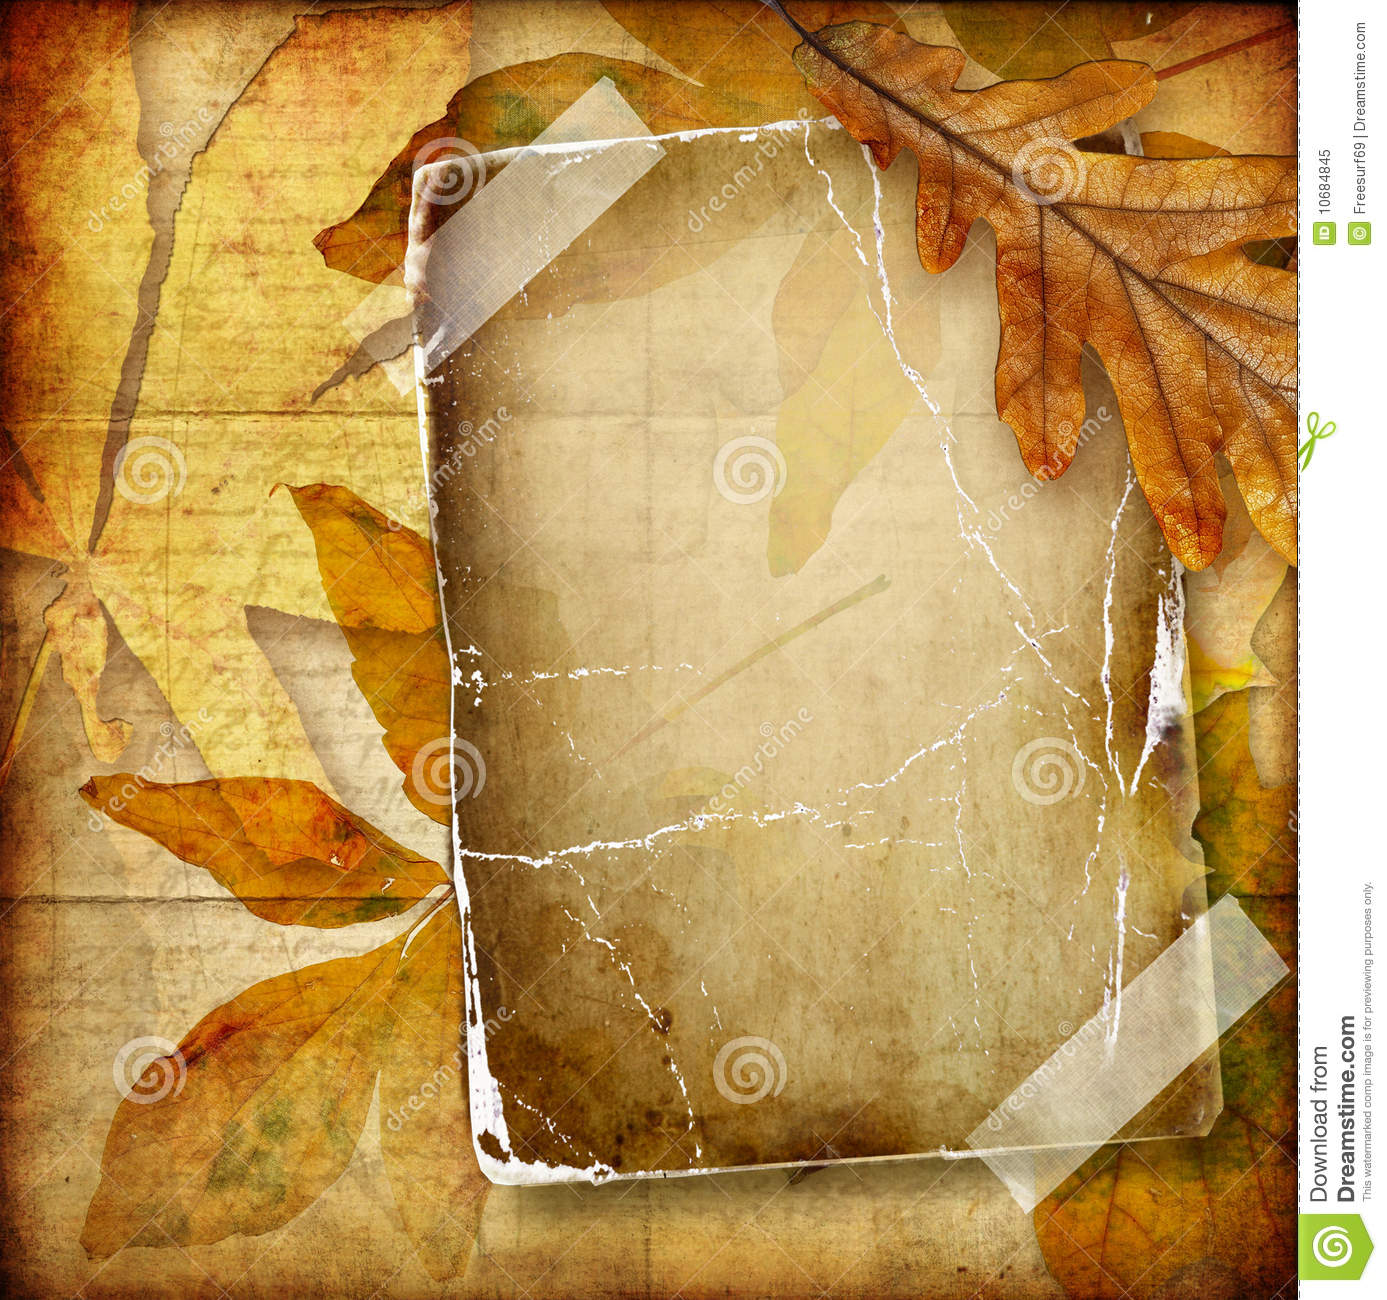 Autumn Background Stock Photos, Images, & Pictures - 739,875 Images